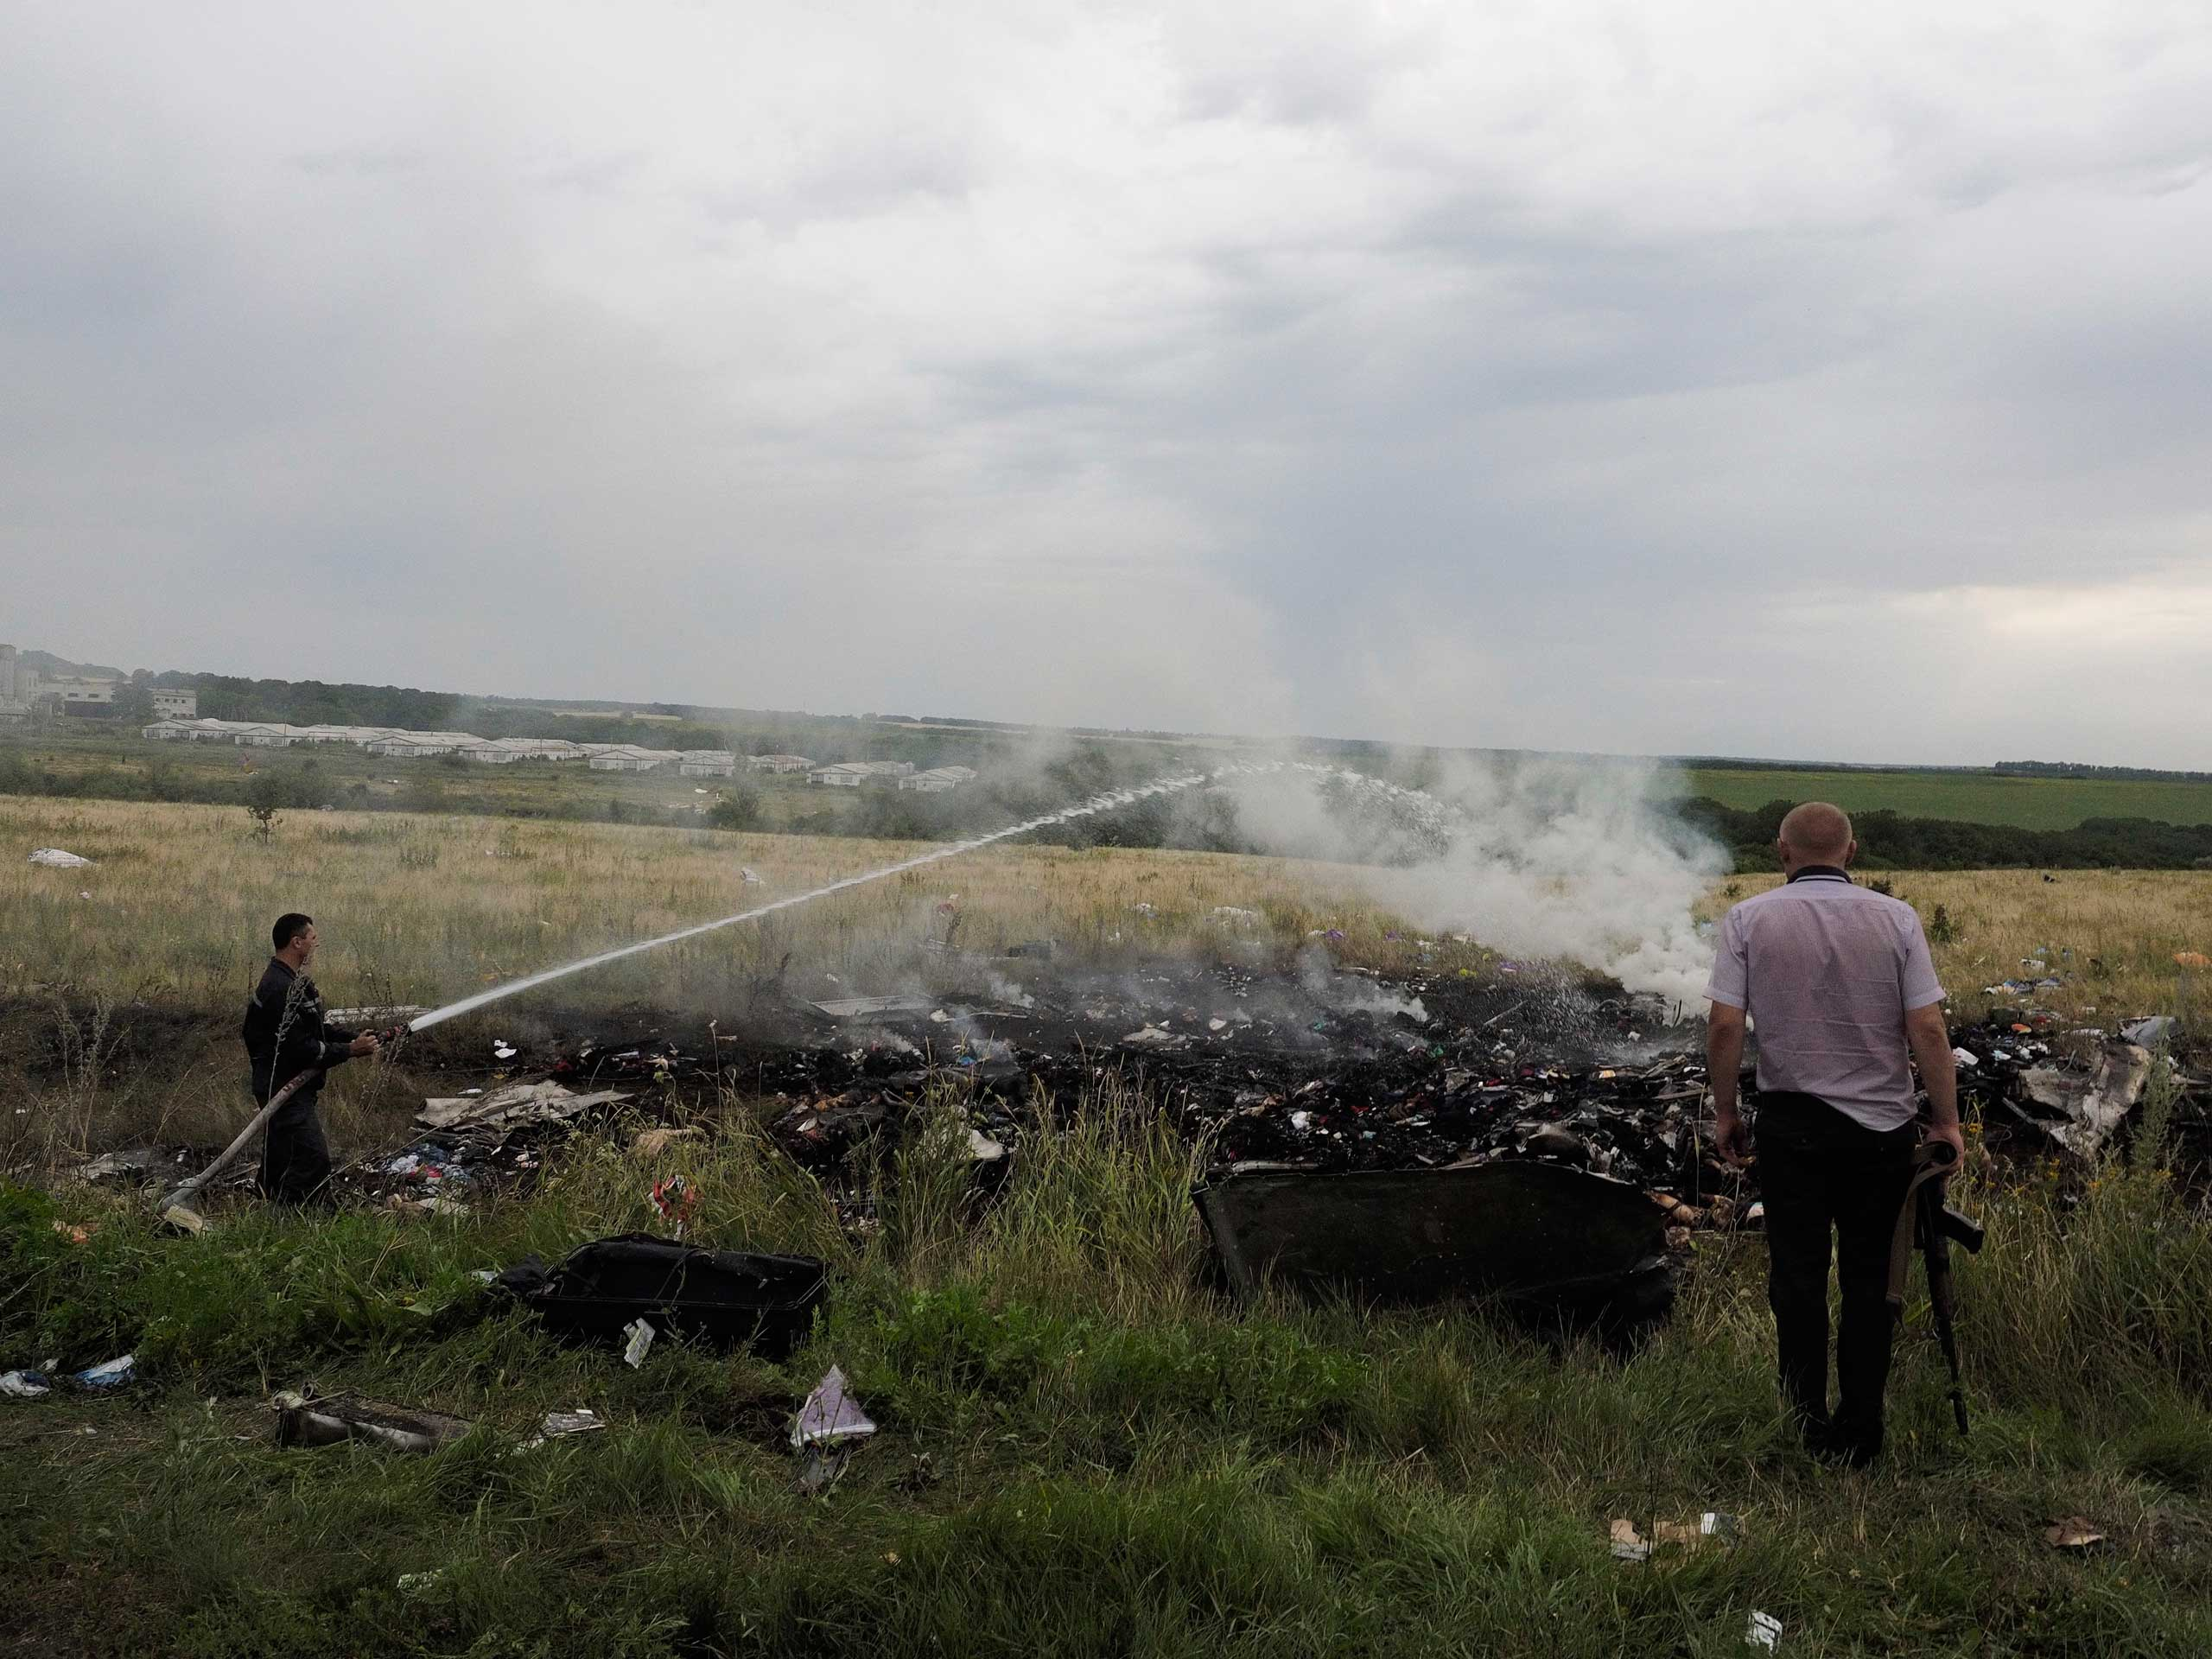 A firefighter and an armed man look at the remains and the corpses of passengers aboard Malaysia Airlines flight MH17 that was shot down over eastern Ukraine, July 17, 2014.